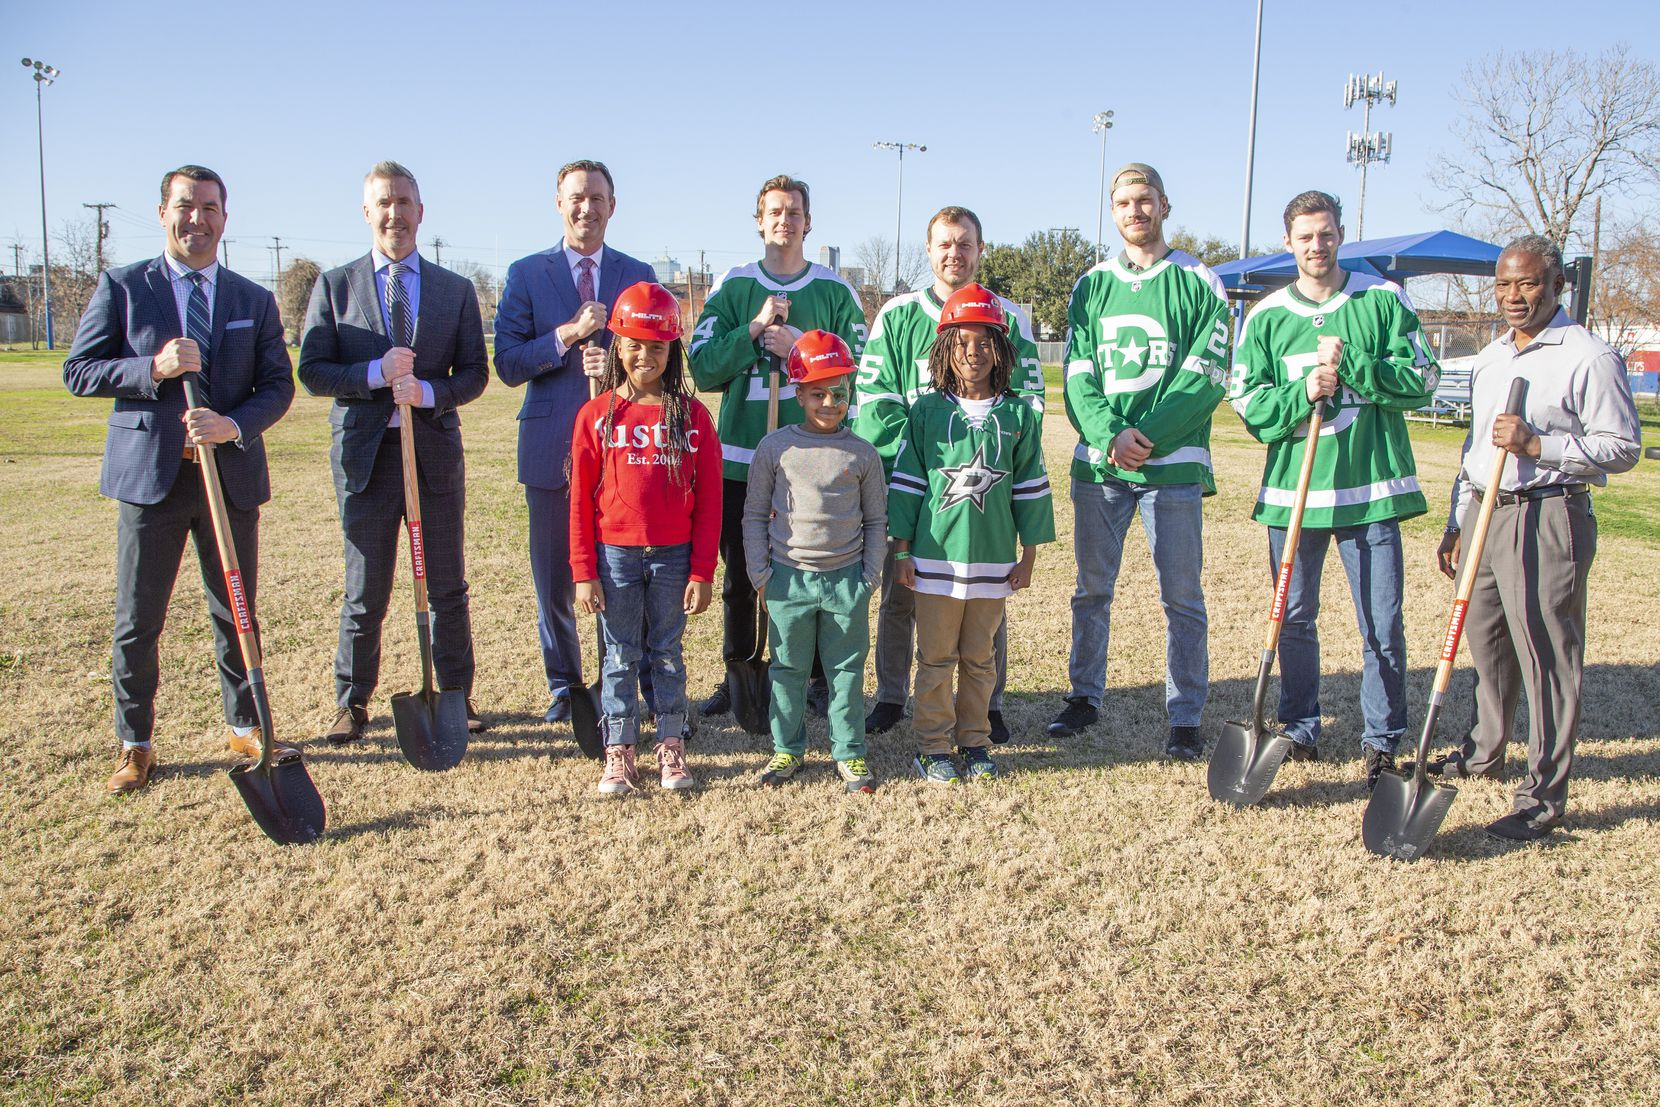 The Stars Foundation named St. Philip's School and Community Center the beneficiary of its Winter Classic Legacy project, committing $2 million over five years. A portion of the $2 million will go to a new multisport athletic complex. Shown with St. Philip's students at a groundbreaking ceremony on Dec. 31, 2019 are (from left) Stars Foundation president Marty Turco, NHL executive VP of marketing Brian Jennings, Stars CEO Brad Alberts, Stars forward Denis Gurianov, goaltender Anton Khuodobin, defenseman Jamie Oleksiak, center Jason Dickinson and St. Philip's headmaster Dr. Terry Flowers.